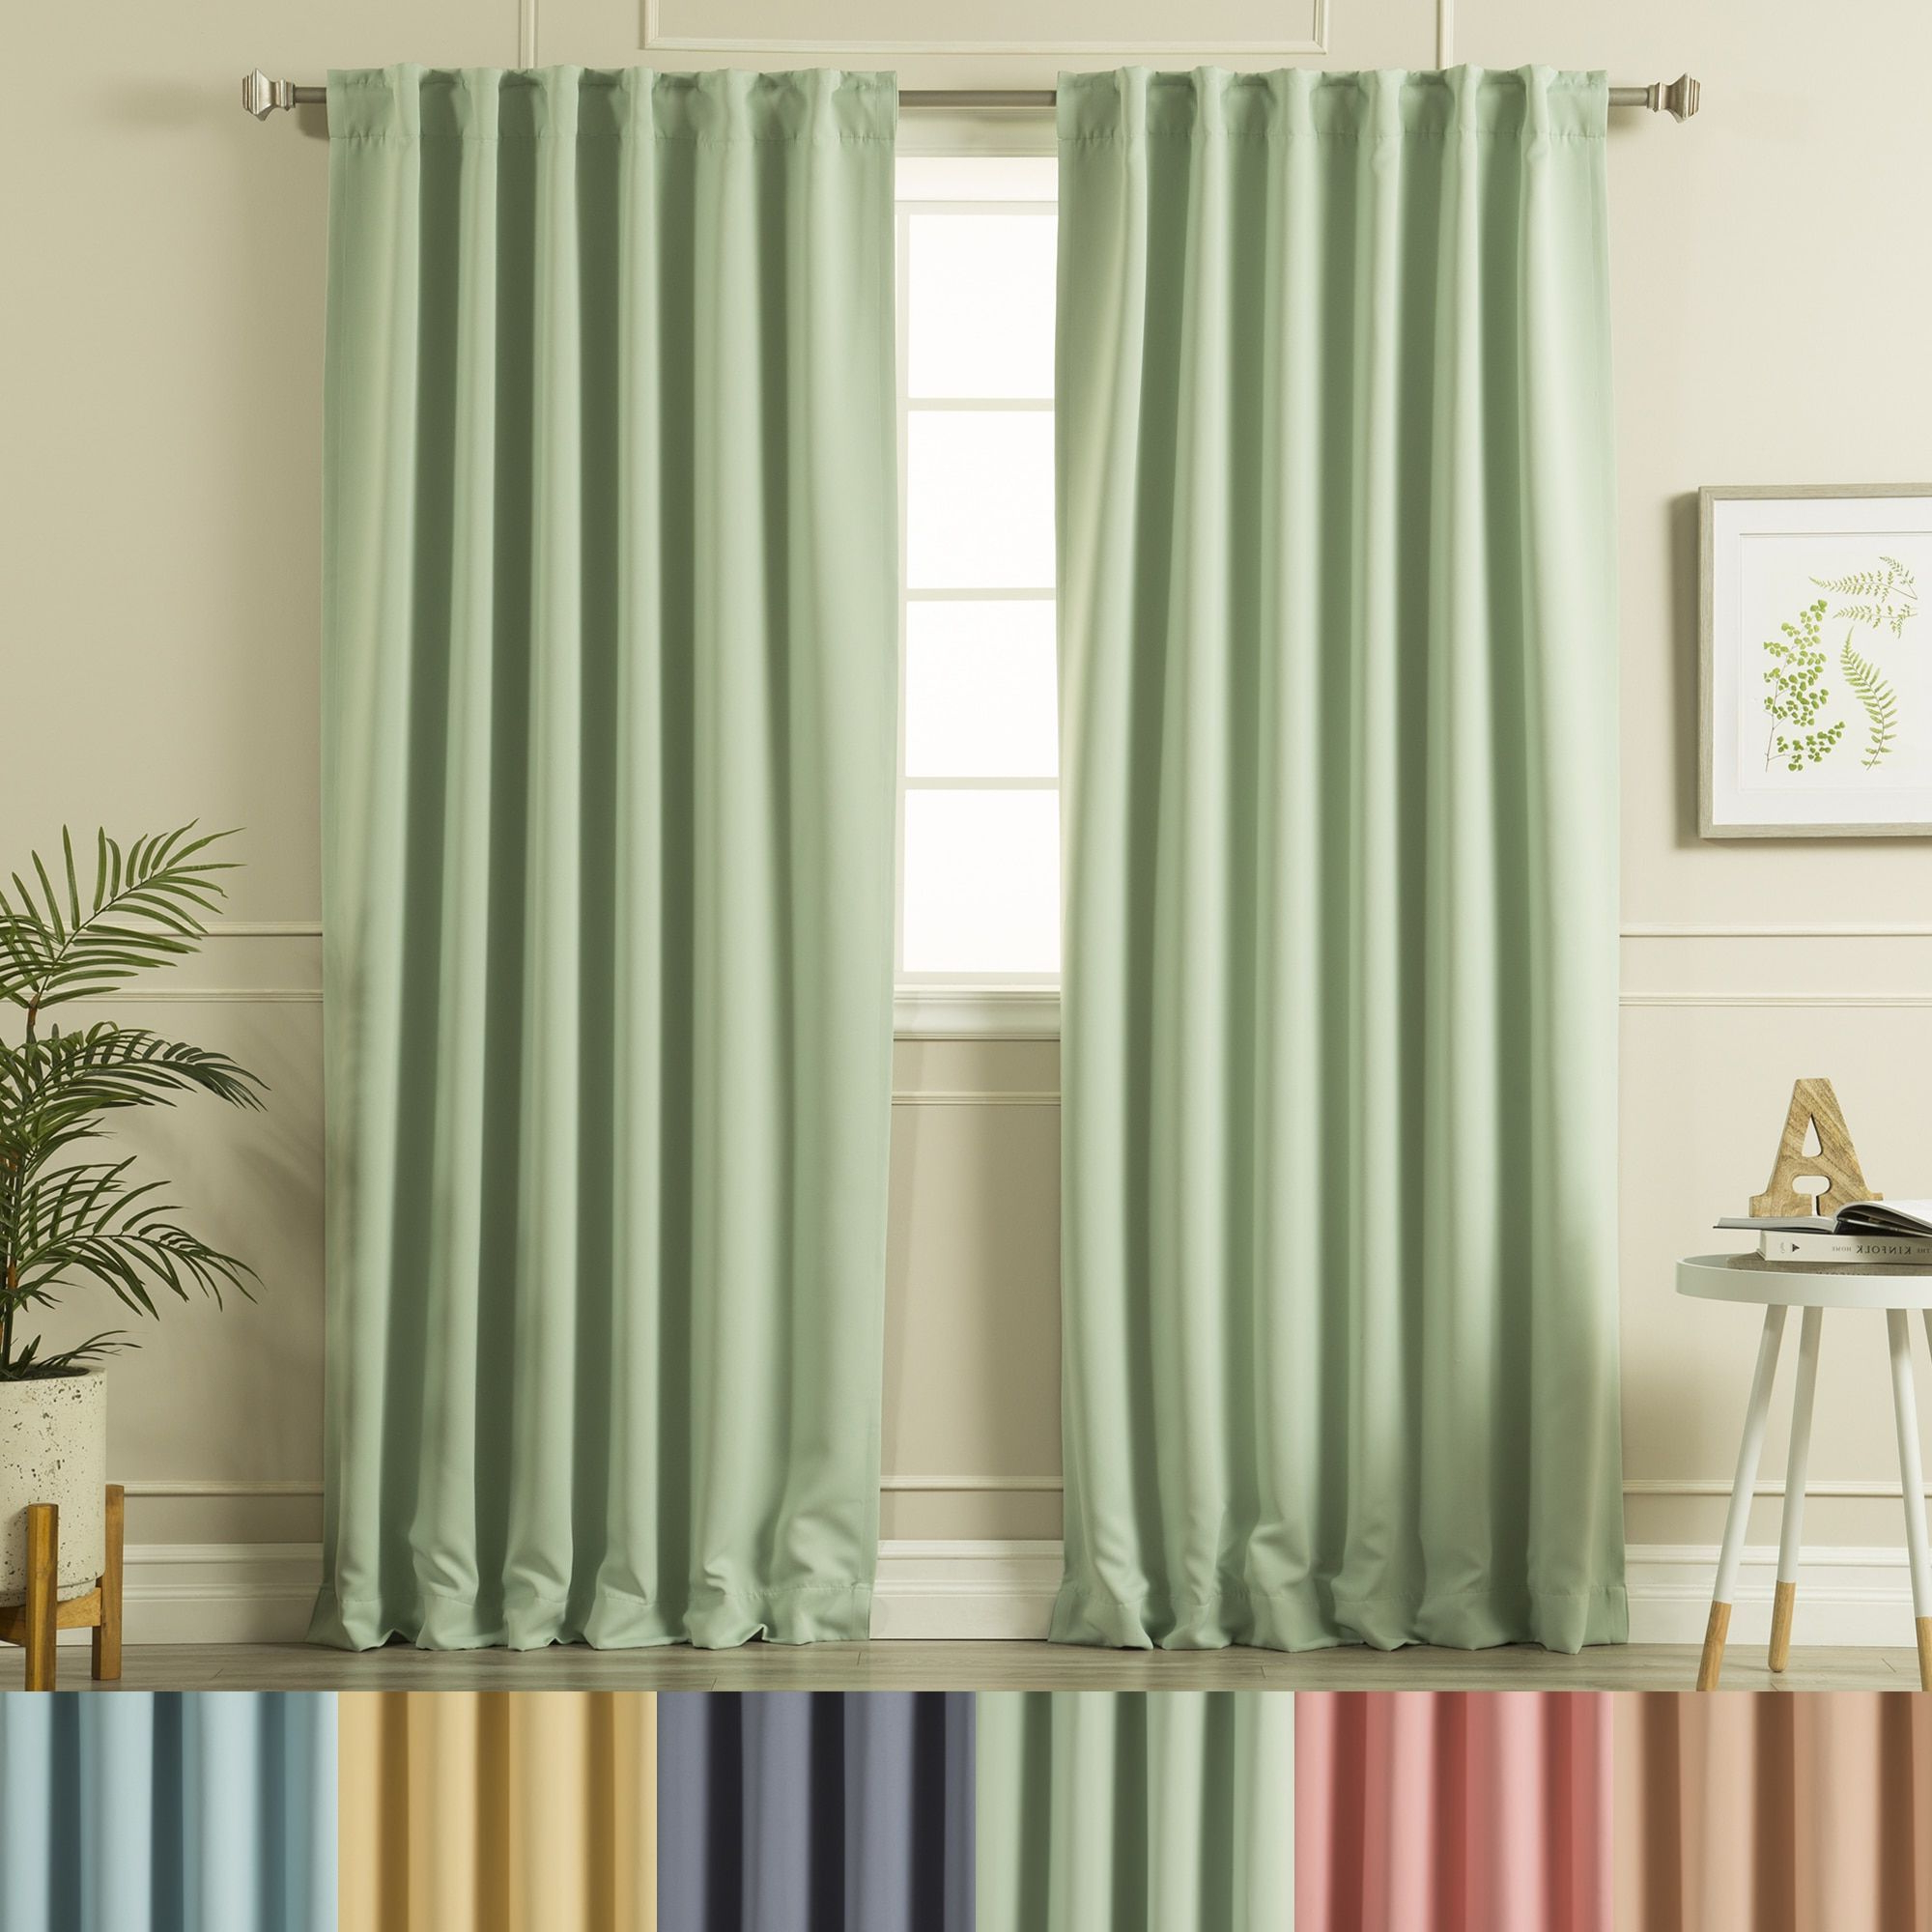 Aurora Home Solid Insulated Thermal Blackout Curtain Panel Inside Newest Gracewood Hollow Tucakovic Energy Efficient Fabric Blackout Curtains (View 8 of 20)